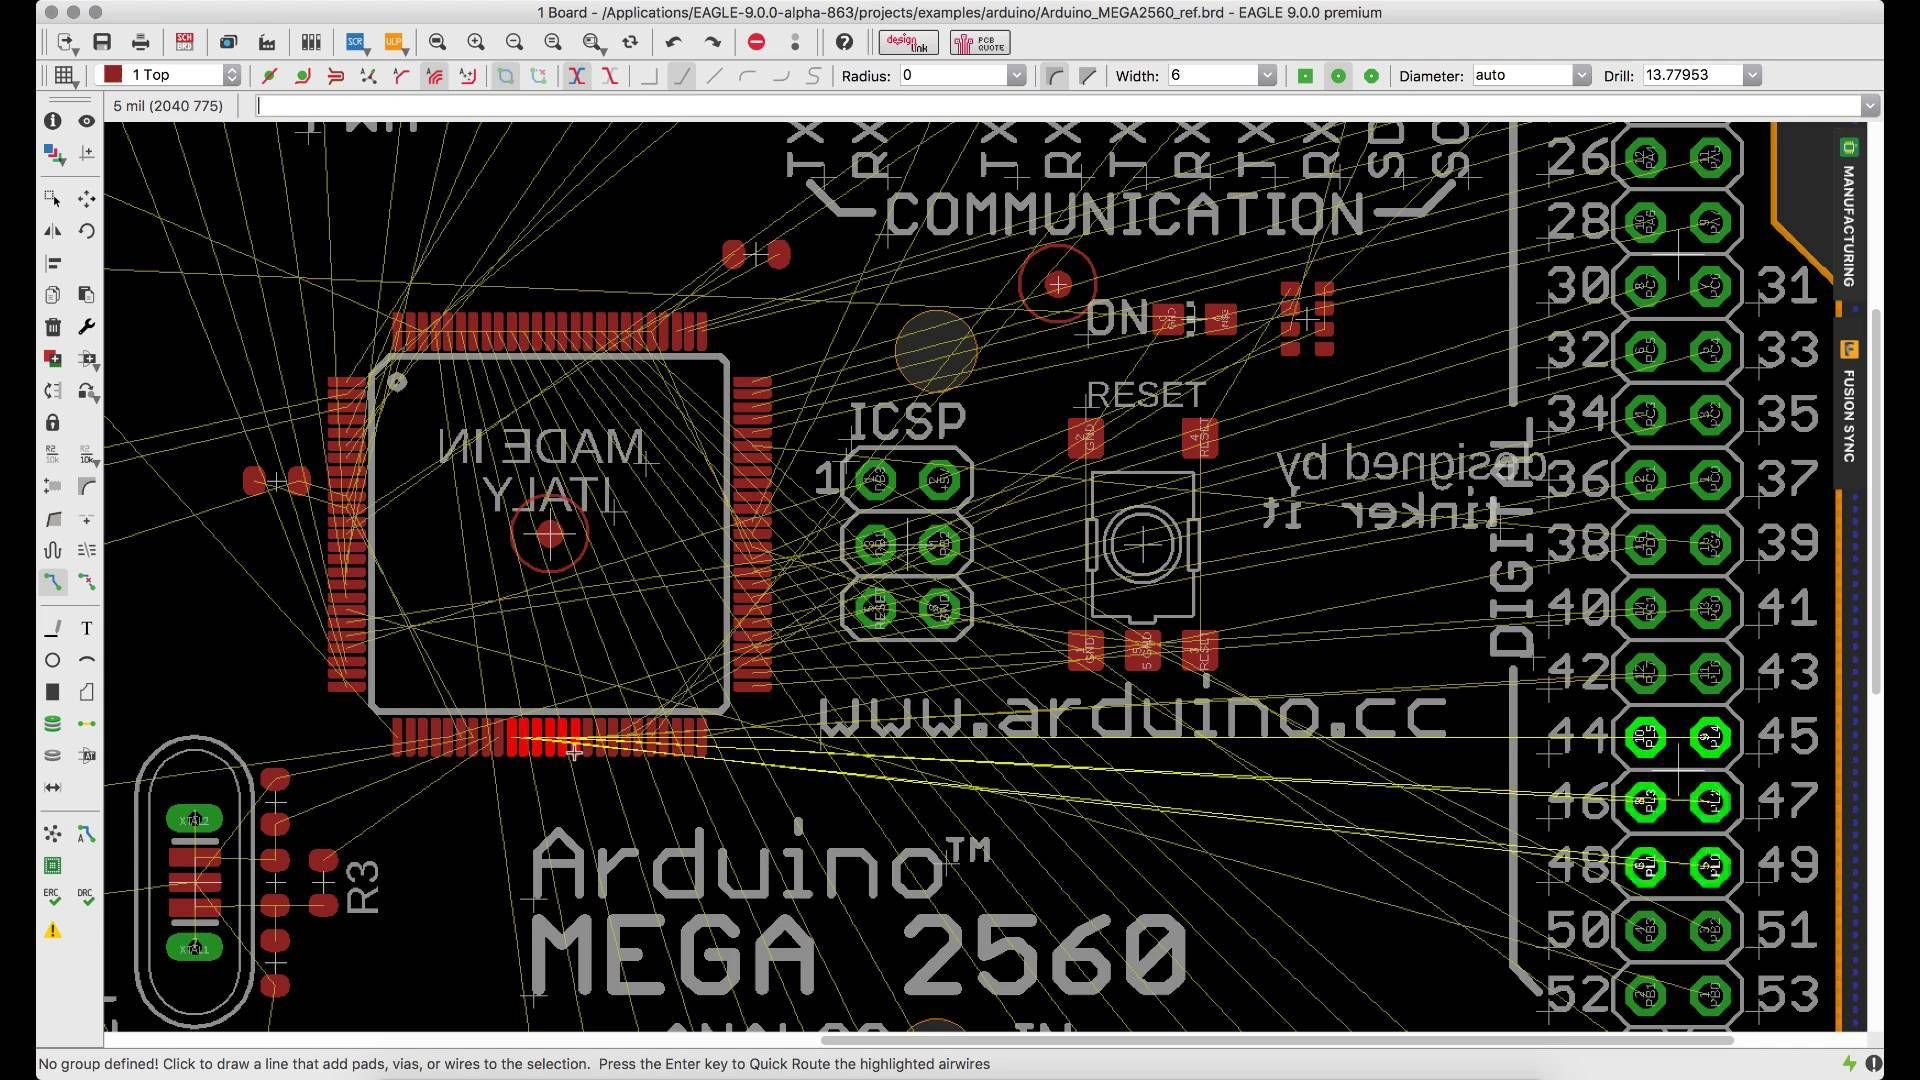 Eagle Pcb Design And Electrical Schematic Software Autodesk Pcb Design Software Design Pcb Design Software